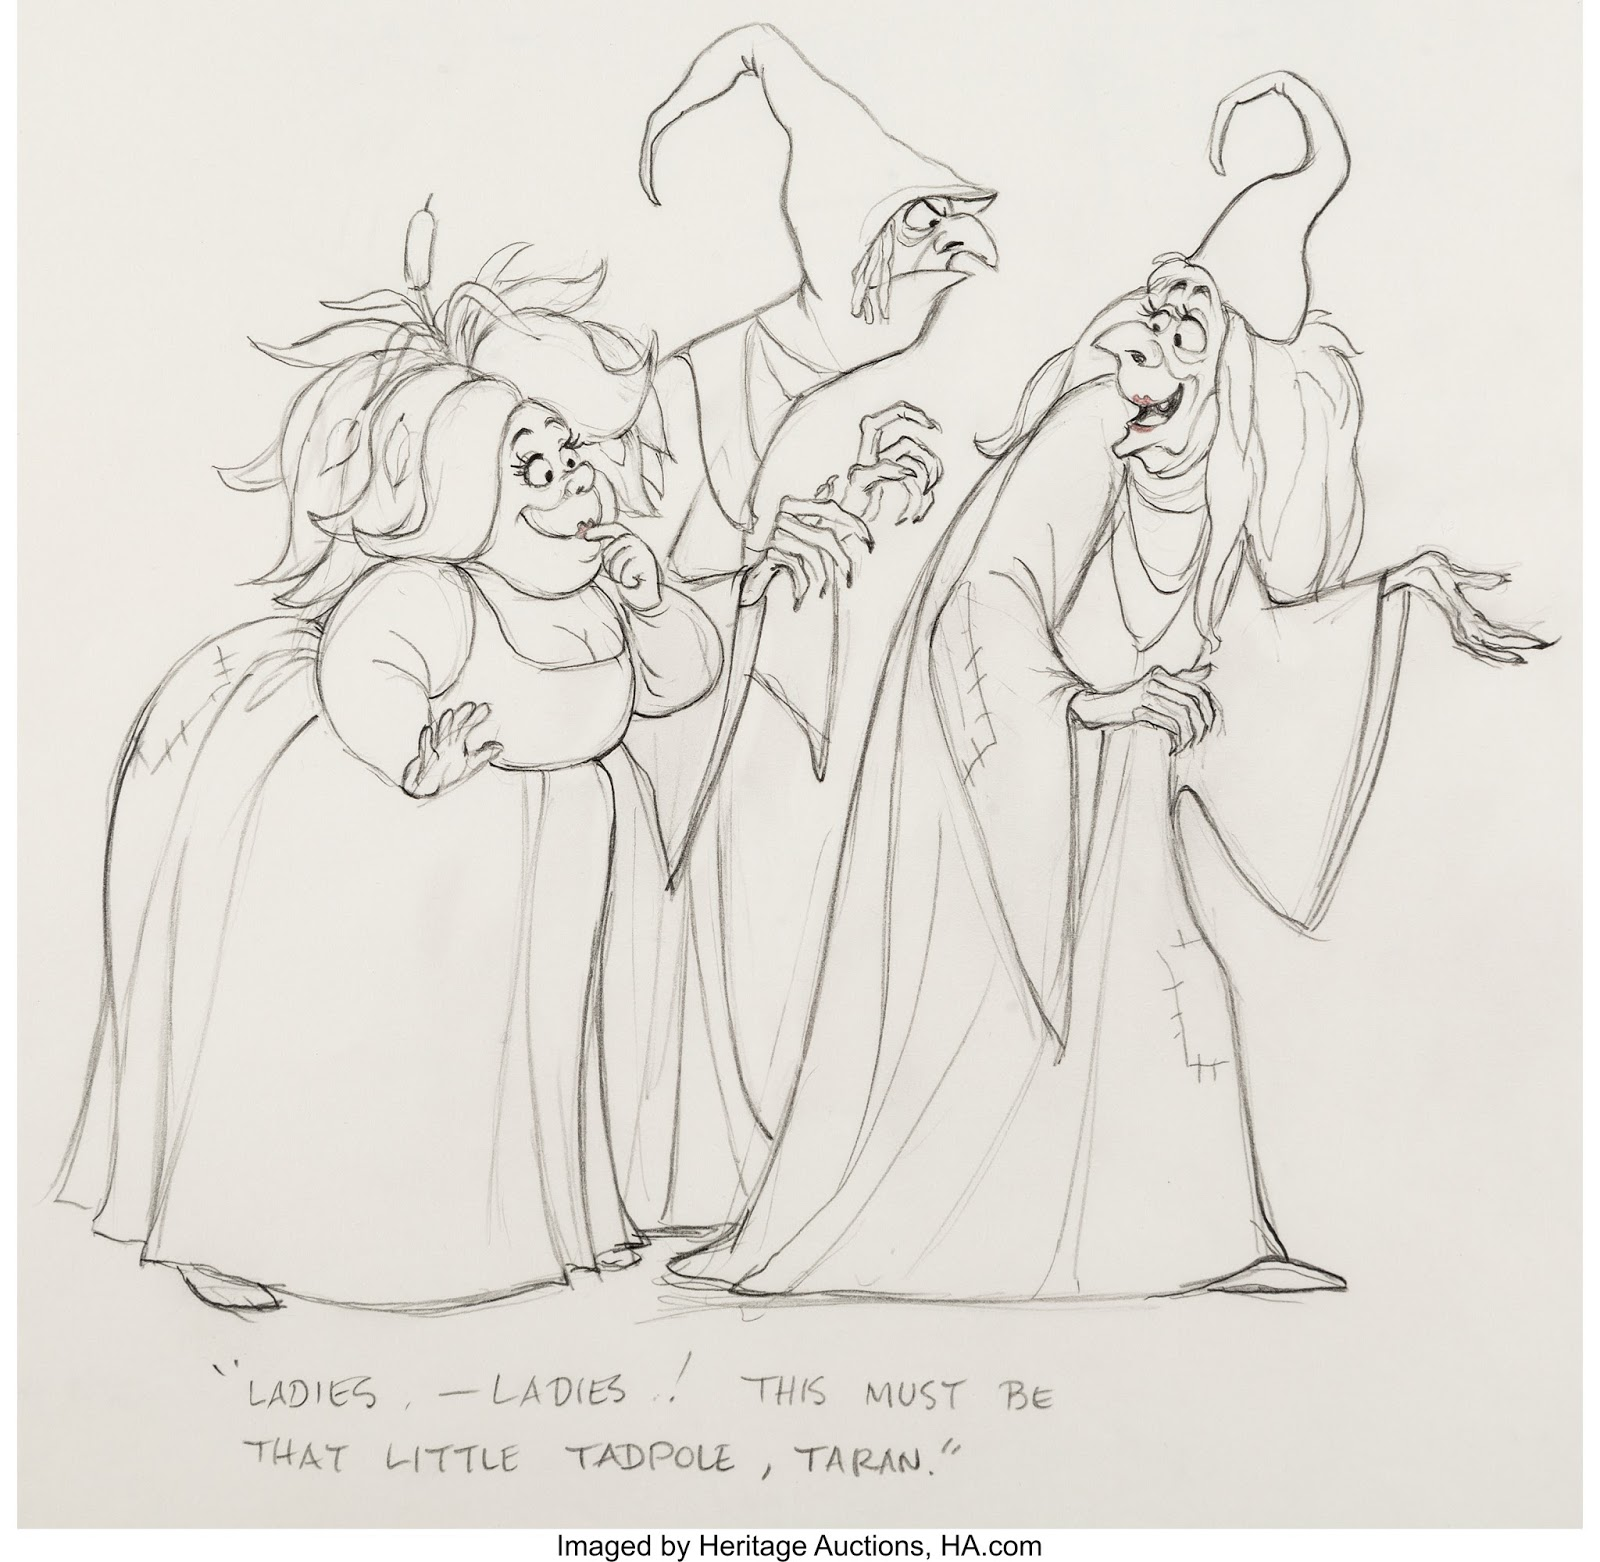 Witches-of-Morva-Concept-Sketch.jpg